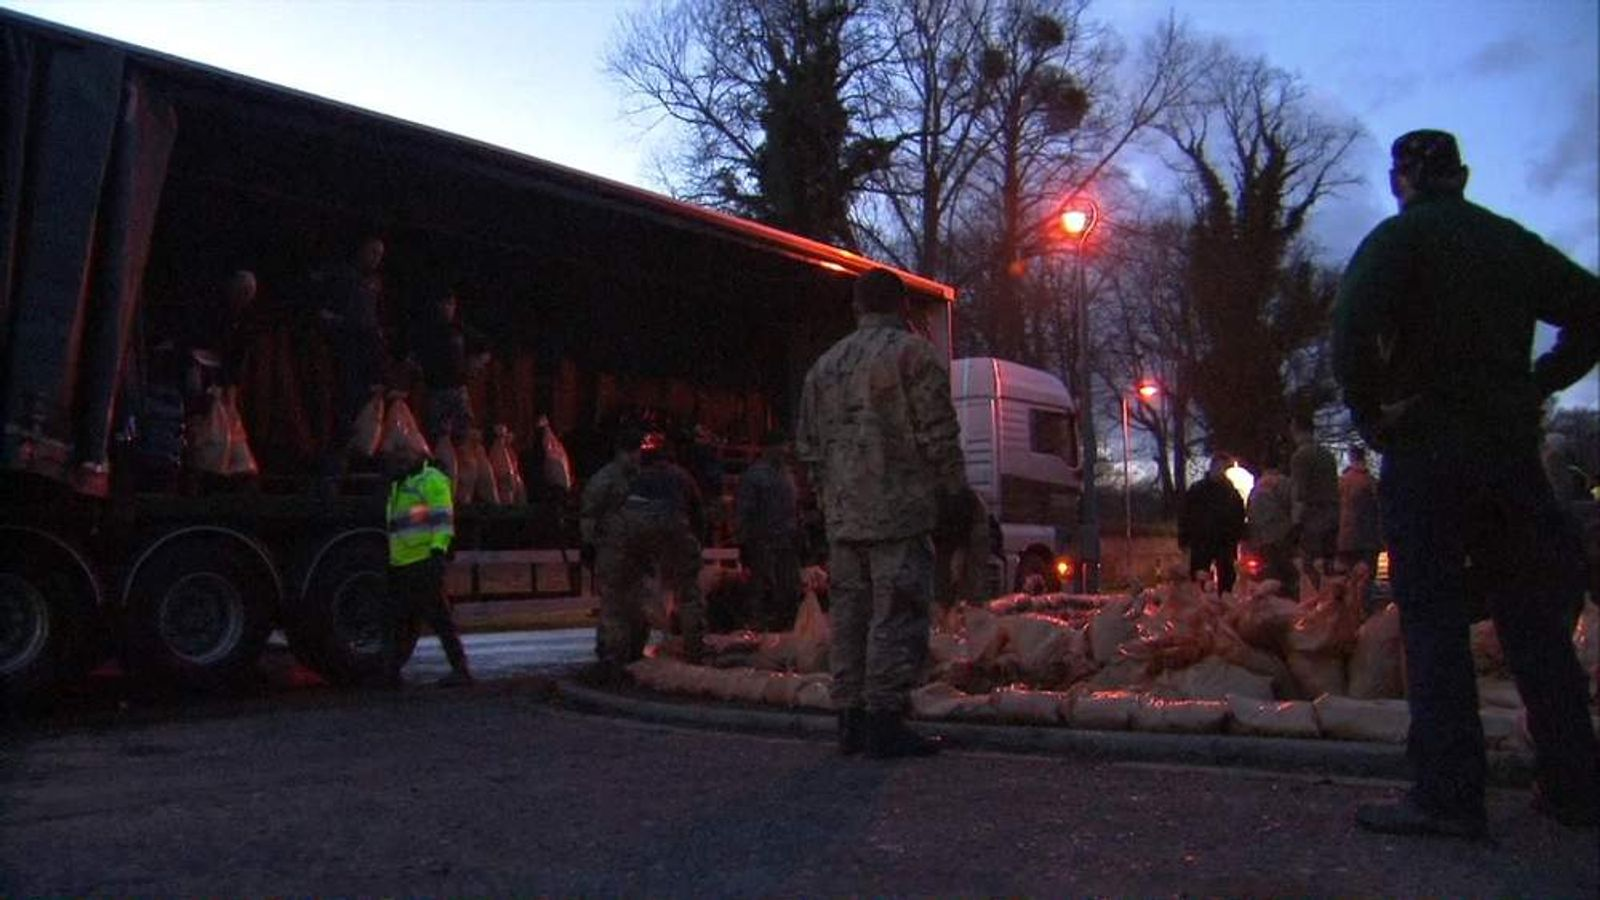 Sandbags being deployed in Datchet